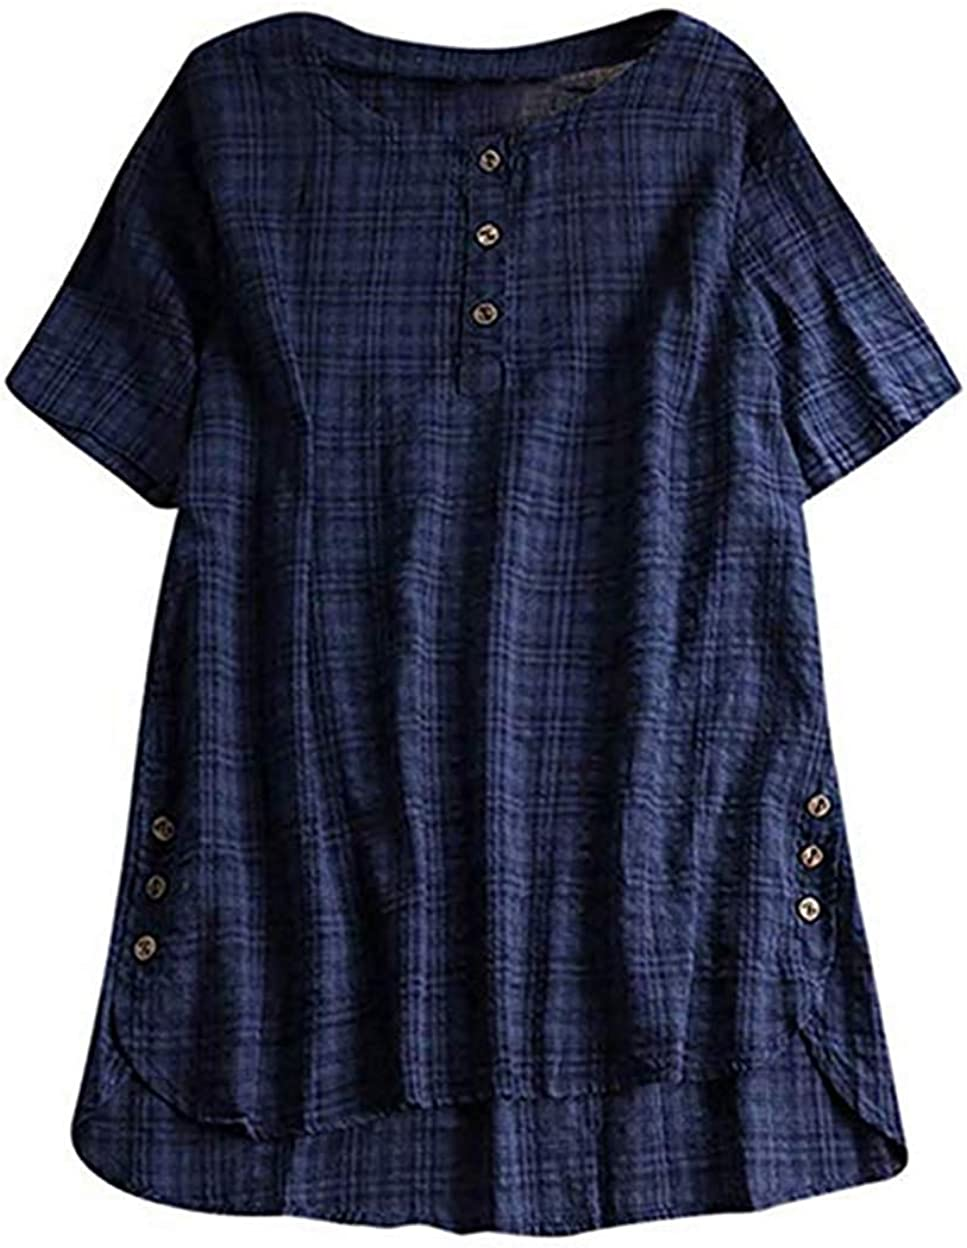 Womens Plus Size Summer Blouse Tunic Holiday Ladies High Low Floral T-shirt Tops